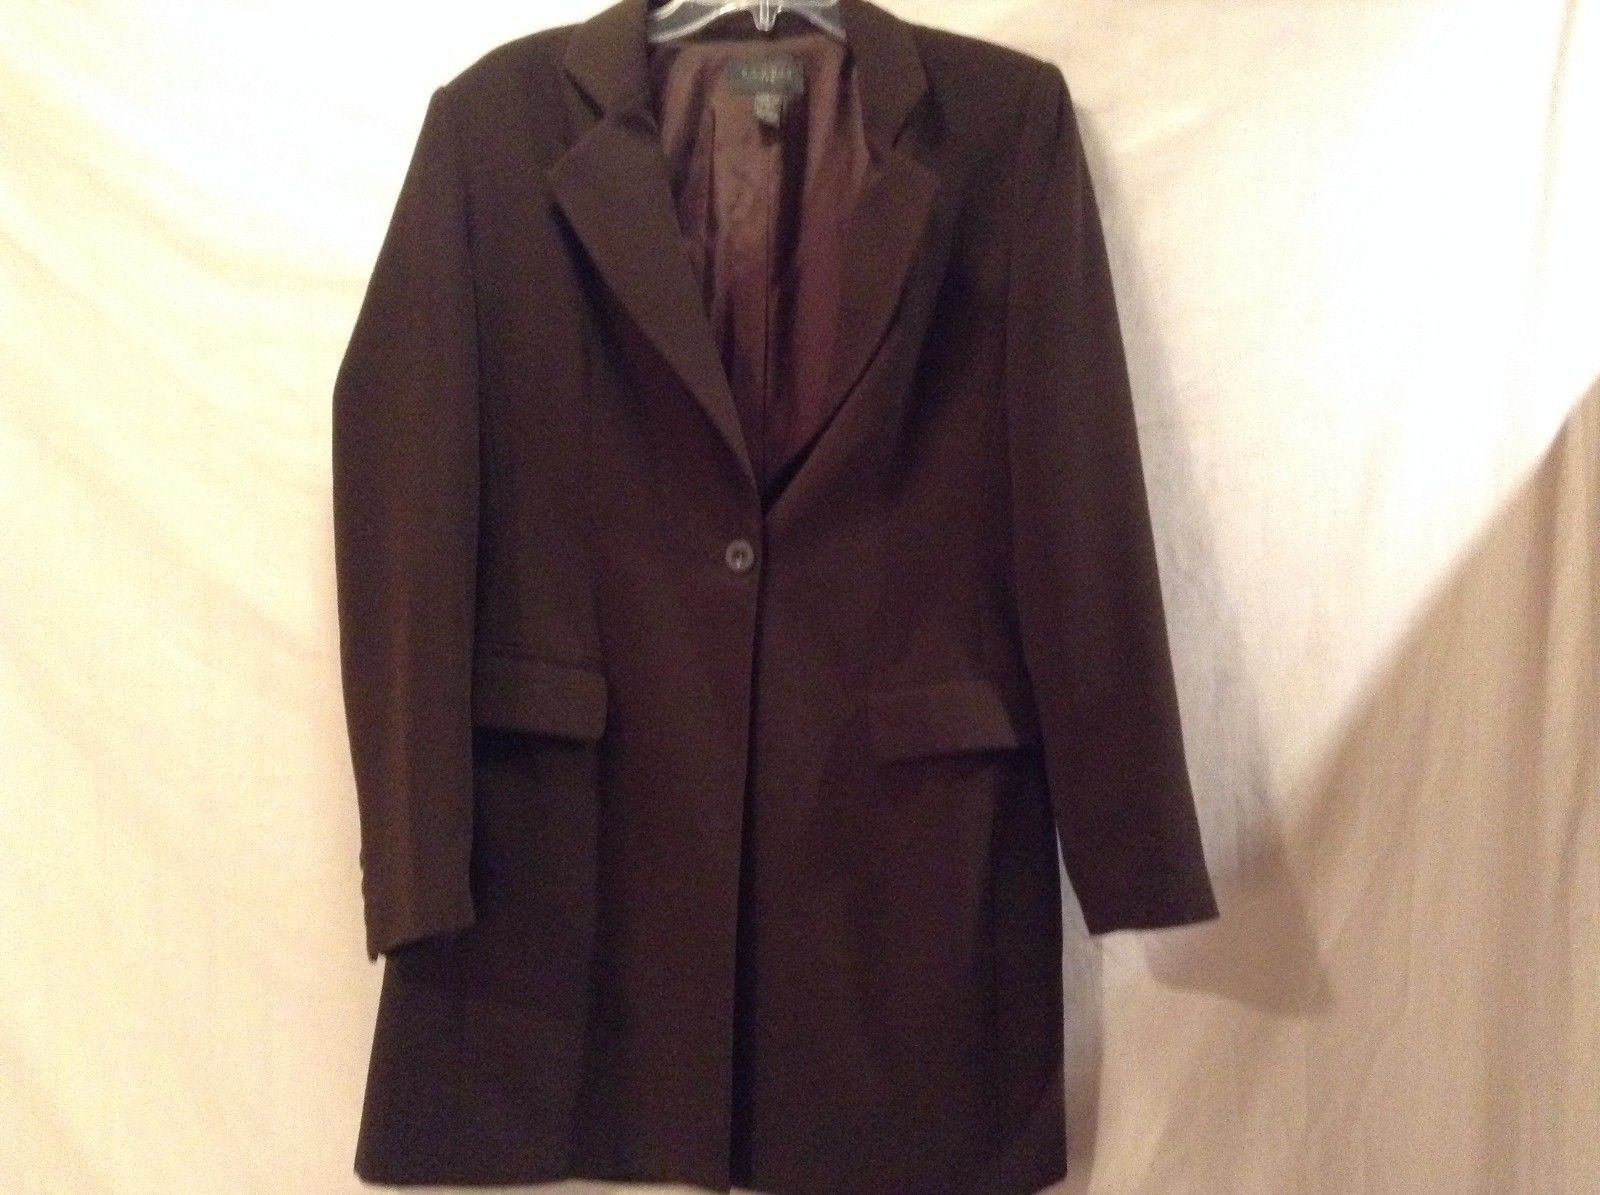 Used Great Condition Studio JPR 100% Polyester Size 8 Brown Suit Jacket